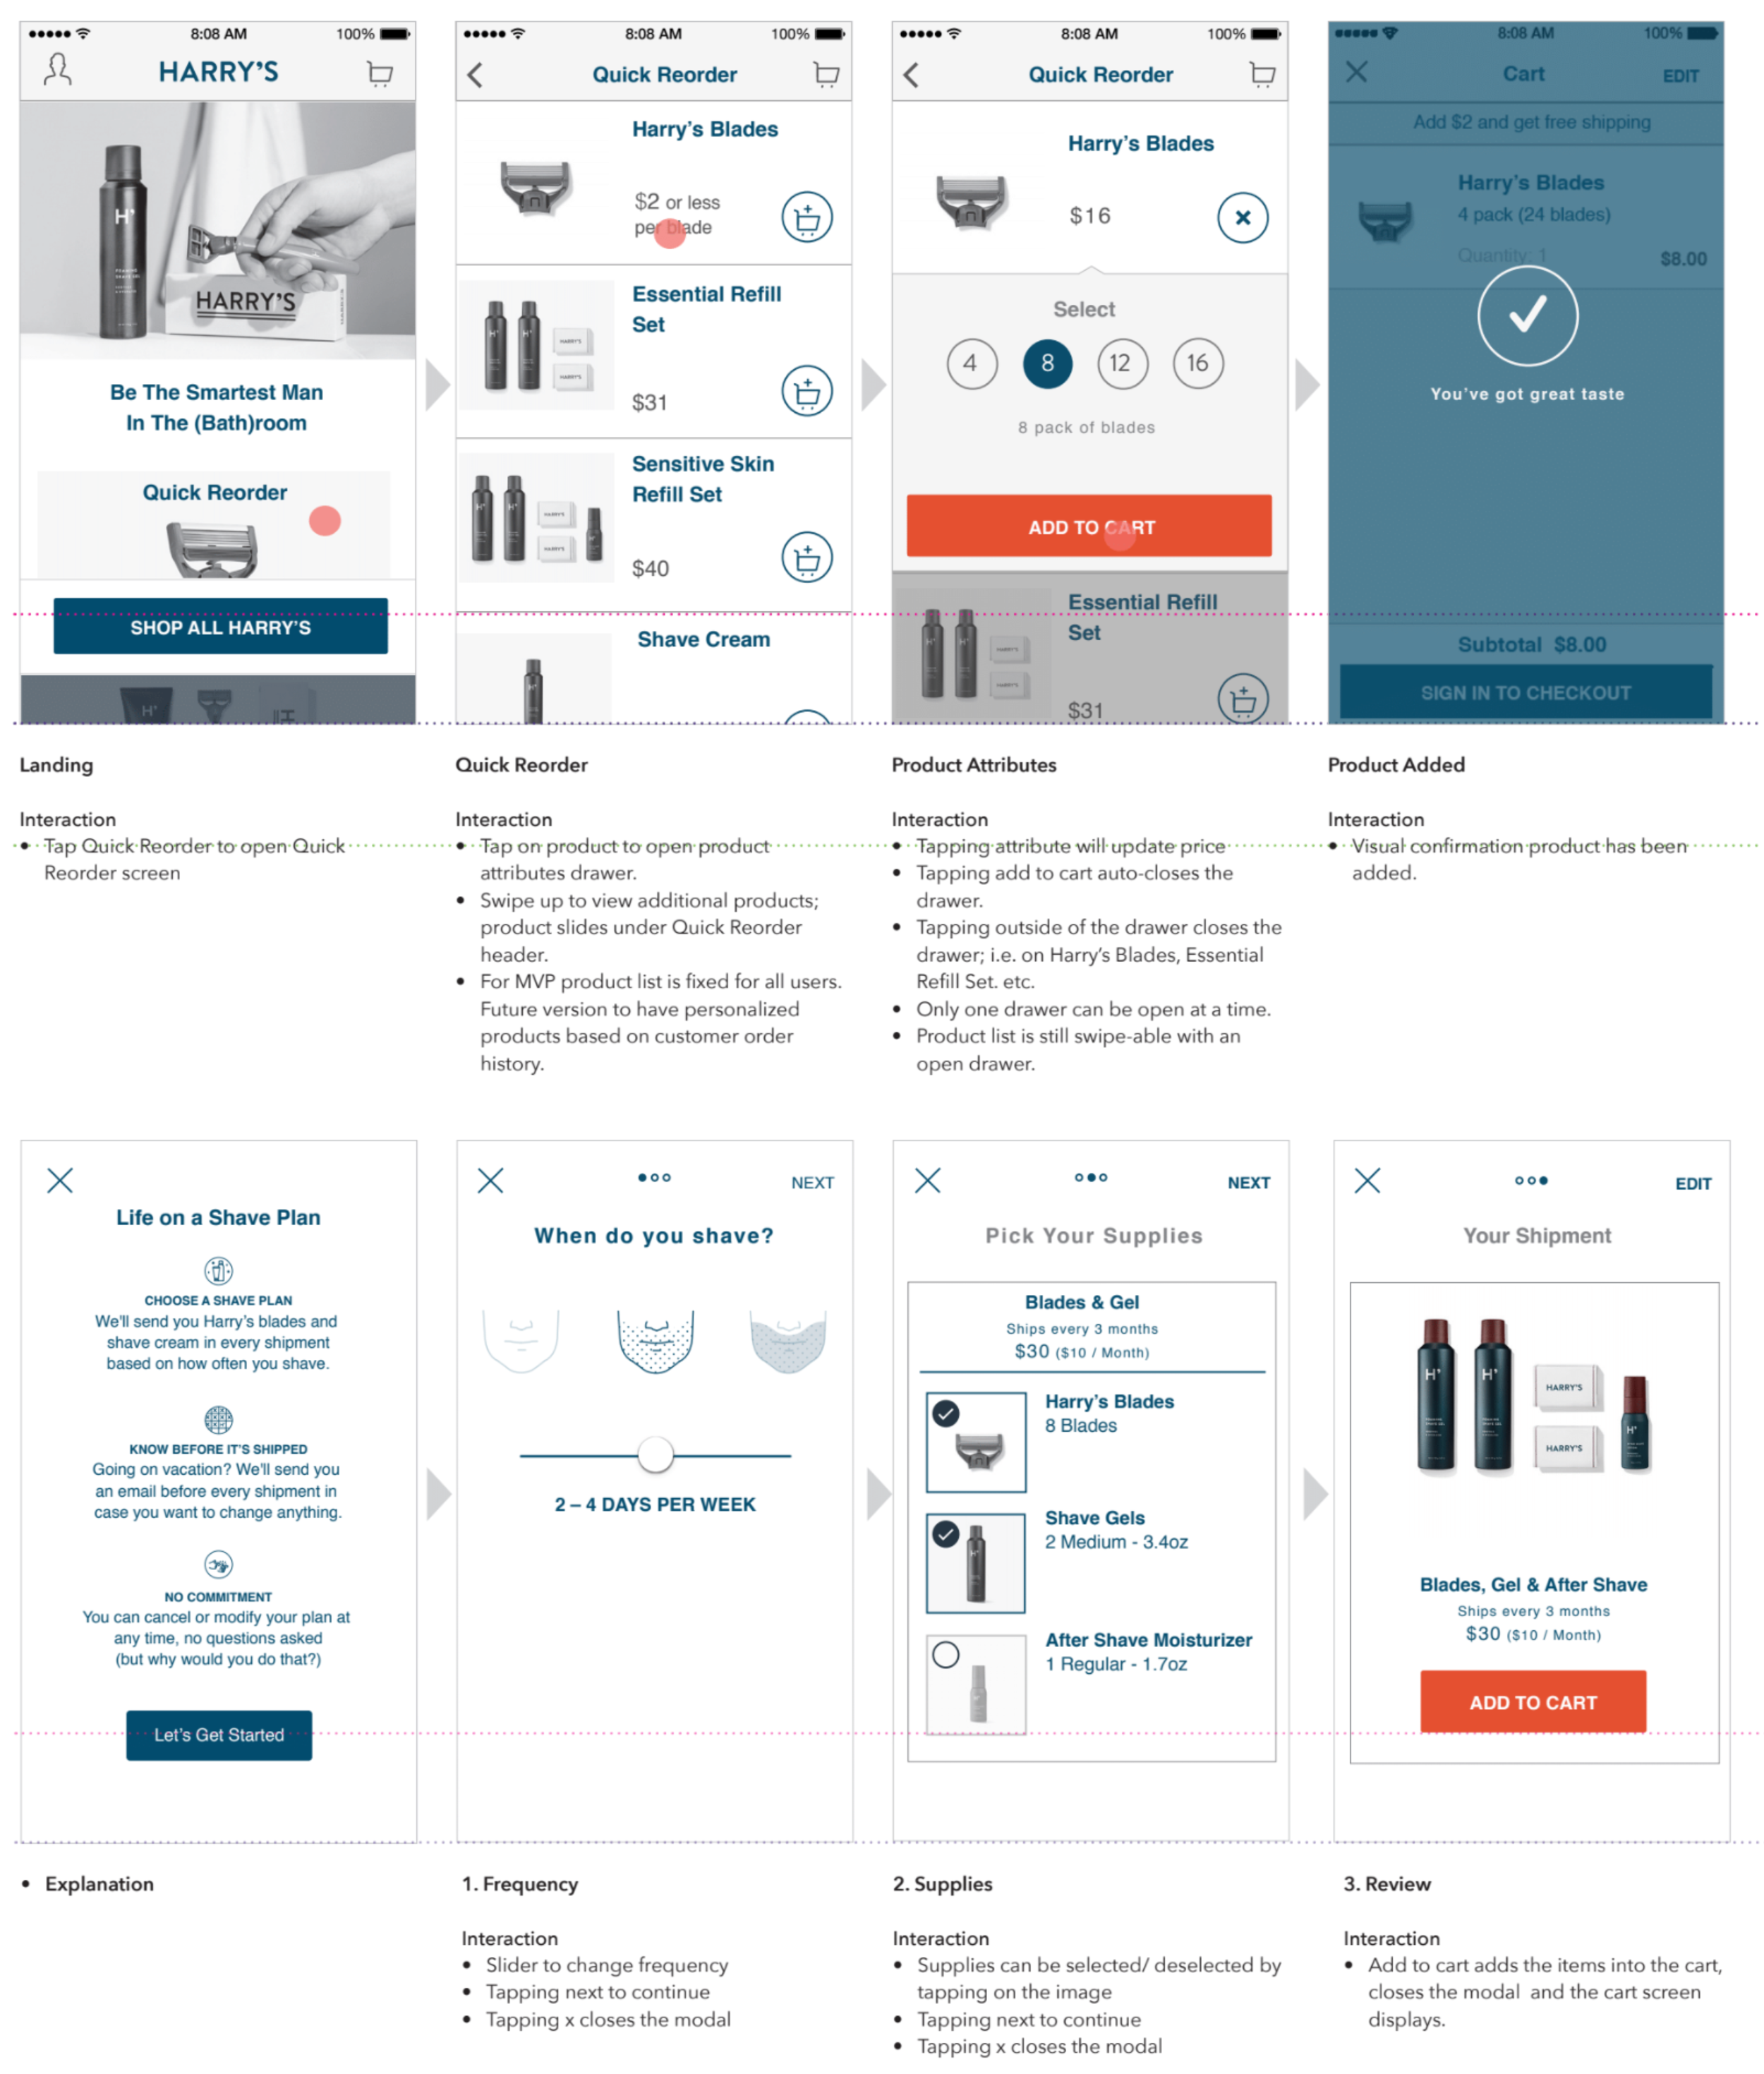 Quick Reorder and shave plan explorations that allow the user to personalize the app based on products purchased and frequency of shaving.